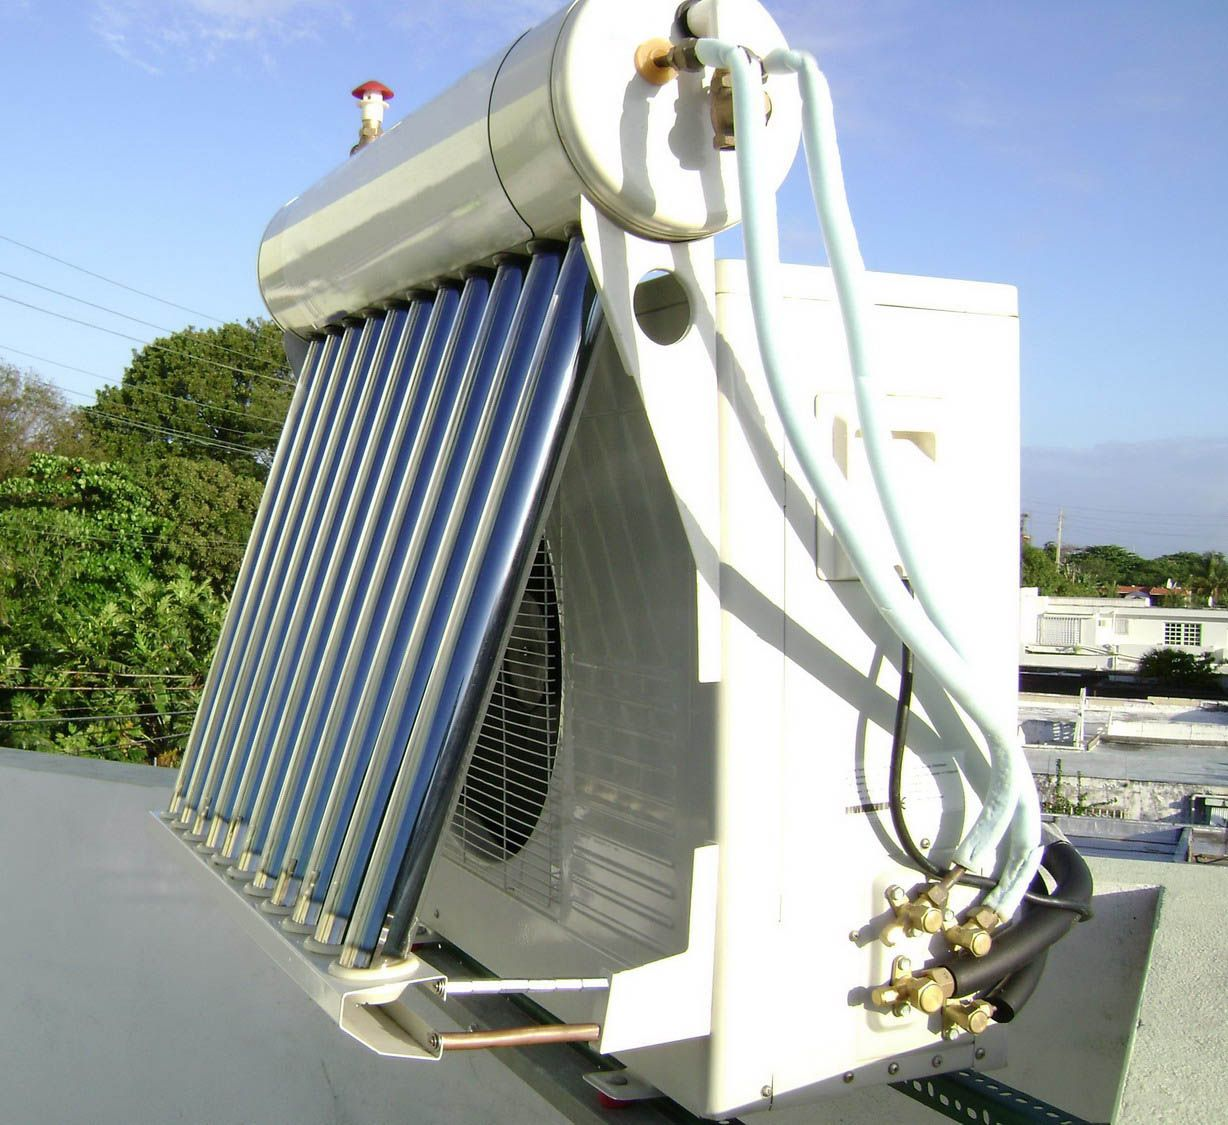 whats new in solar thermal hybrid air conditioners | inventions